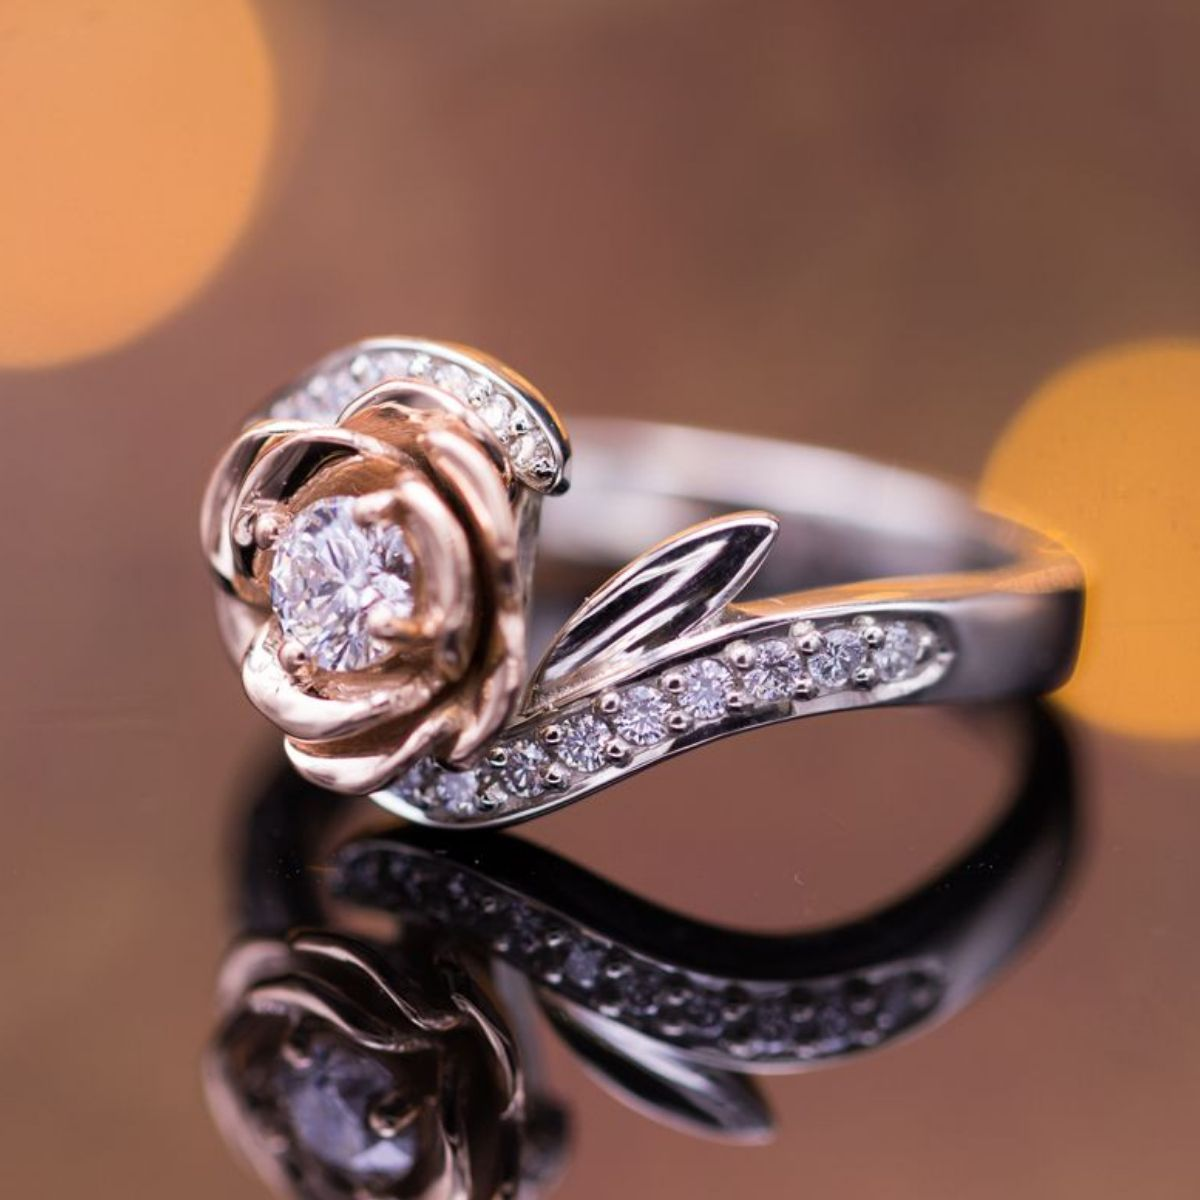 63cb538d06de A blend of rose and white gold in this elegant rose ring with diamonds.